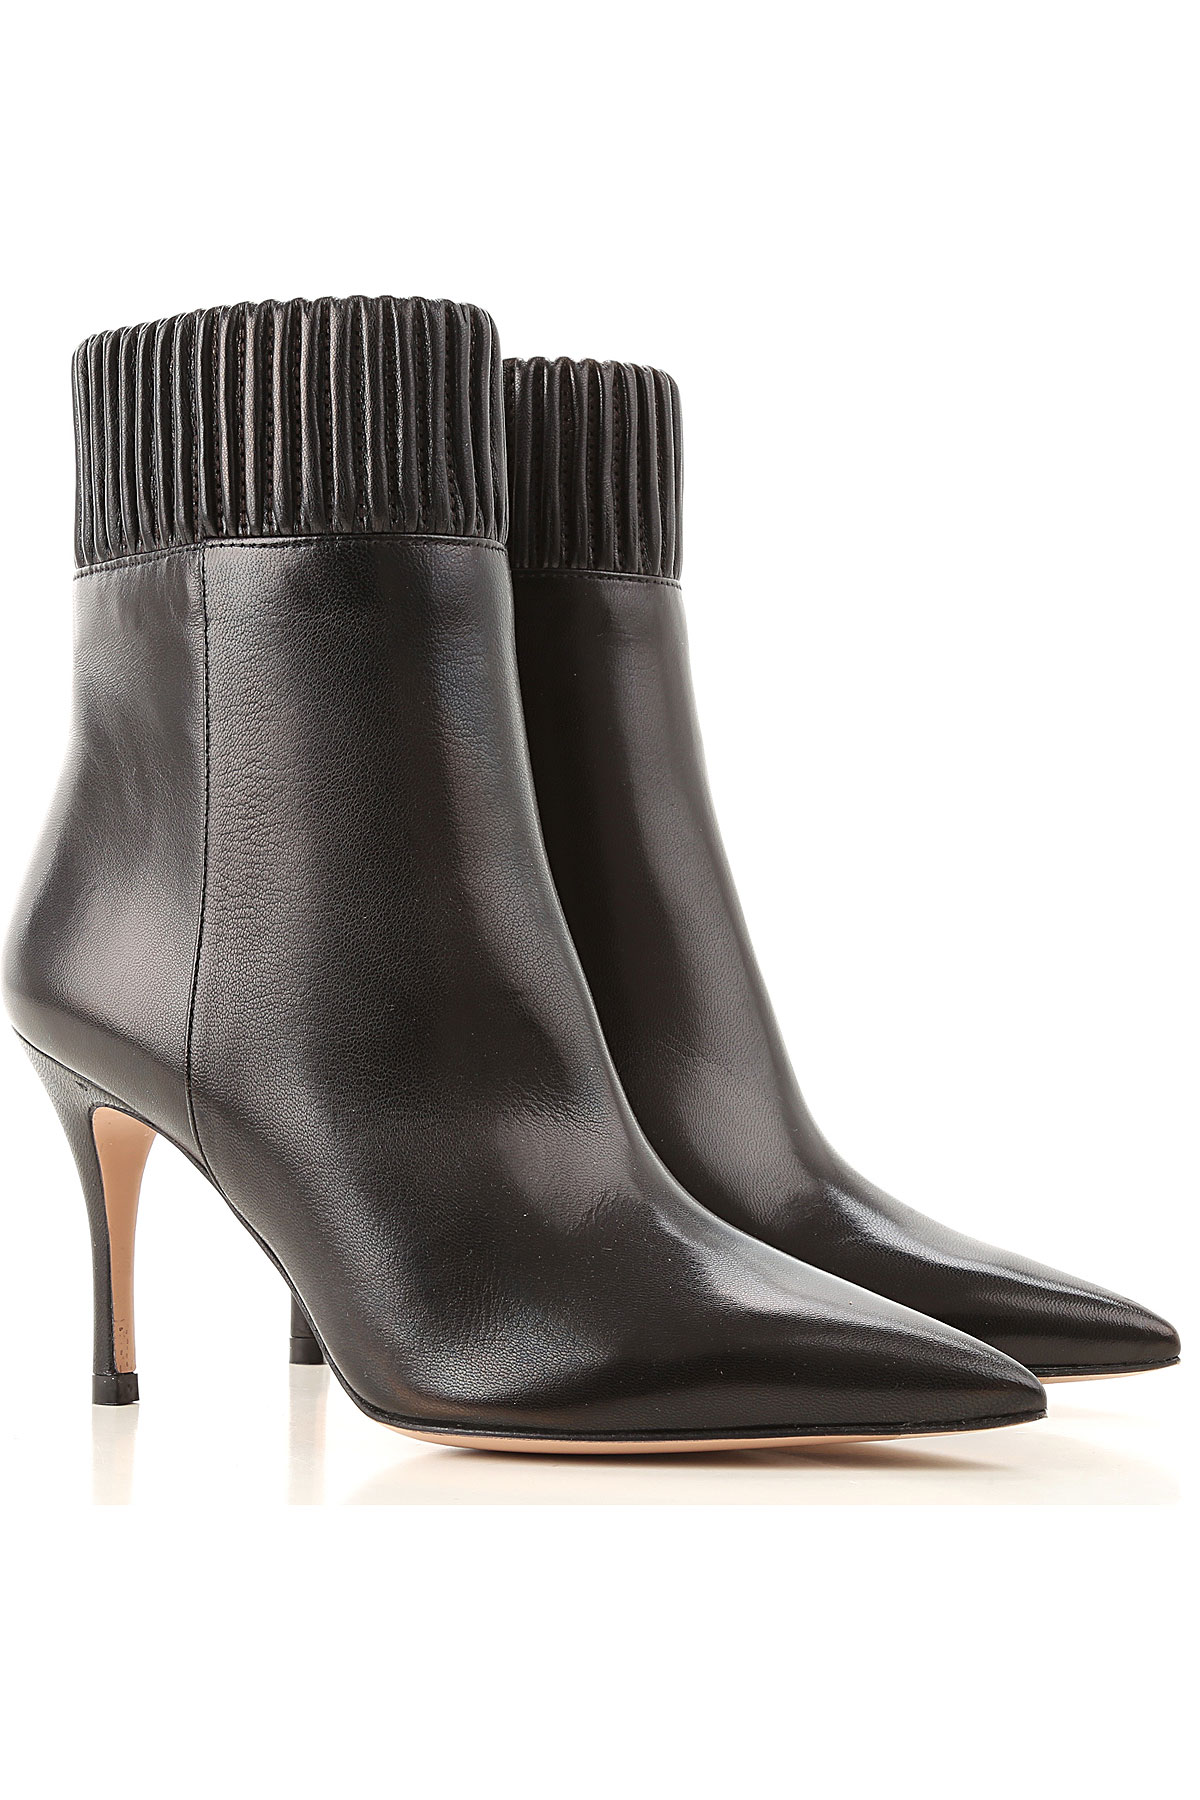 Roberto Festa Boots for Women, Booties On Sale, Black, Leather, 2019, 10 6 8 9